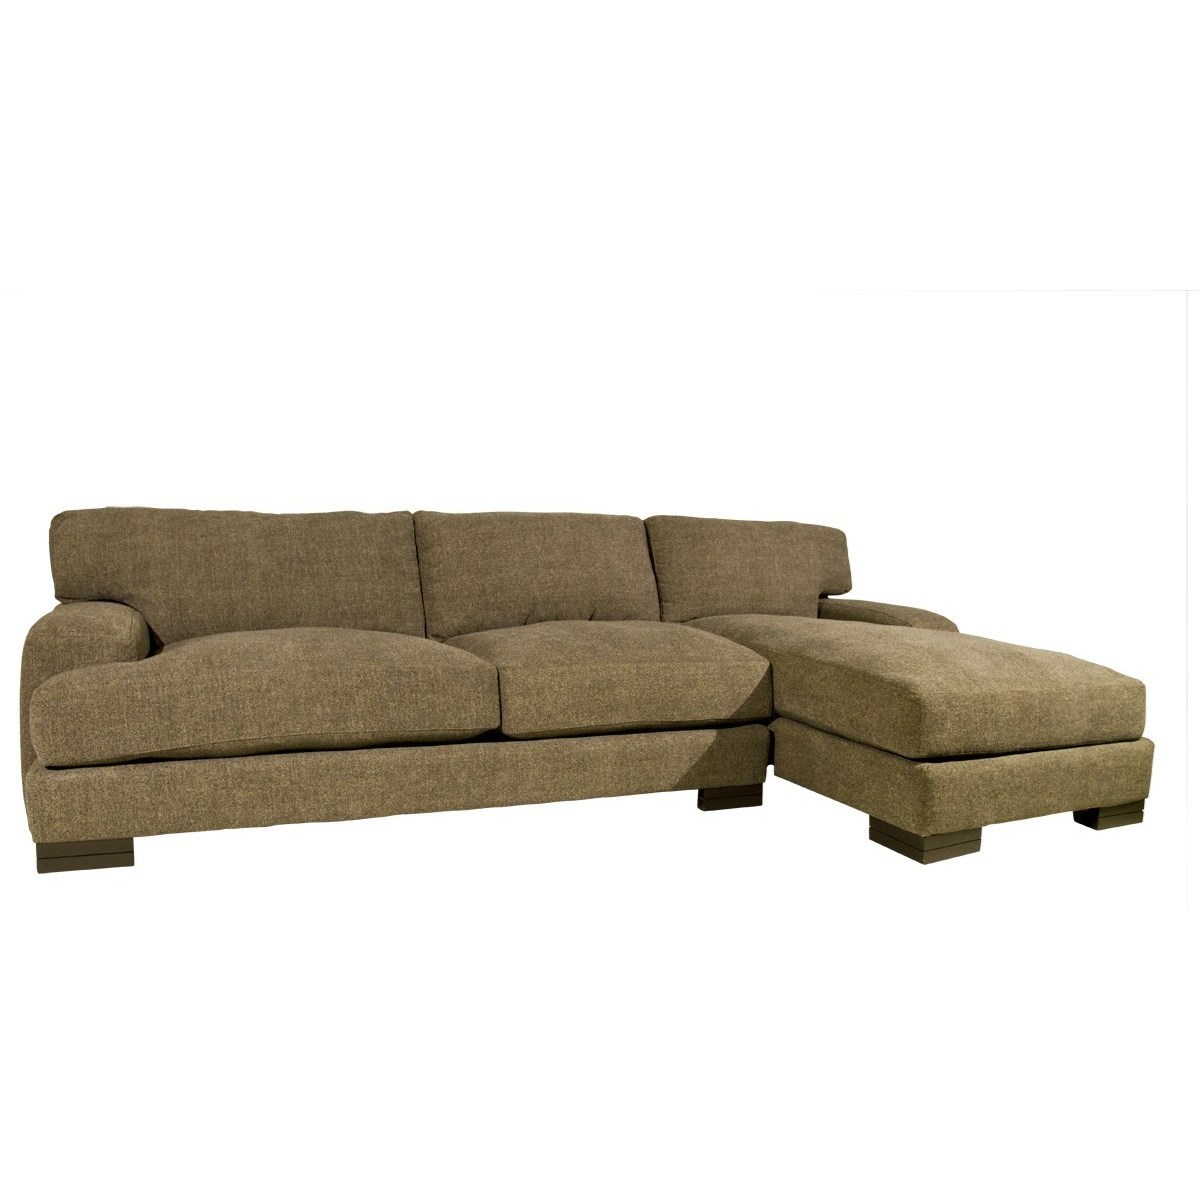 Jonathan Louis Burton Modern Sectional with Right Chaise  sc 1 st  Olindeu0027s Furniture : jonathan louis burton sectional - Sectionals, Sofas & Couches